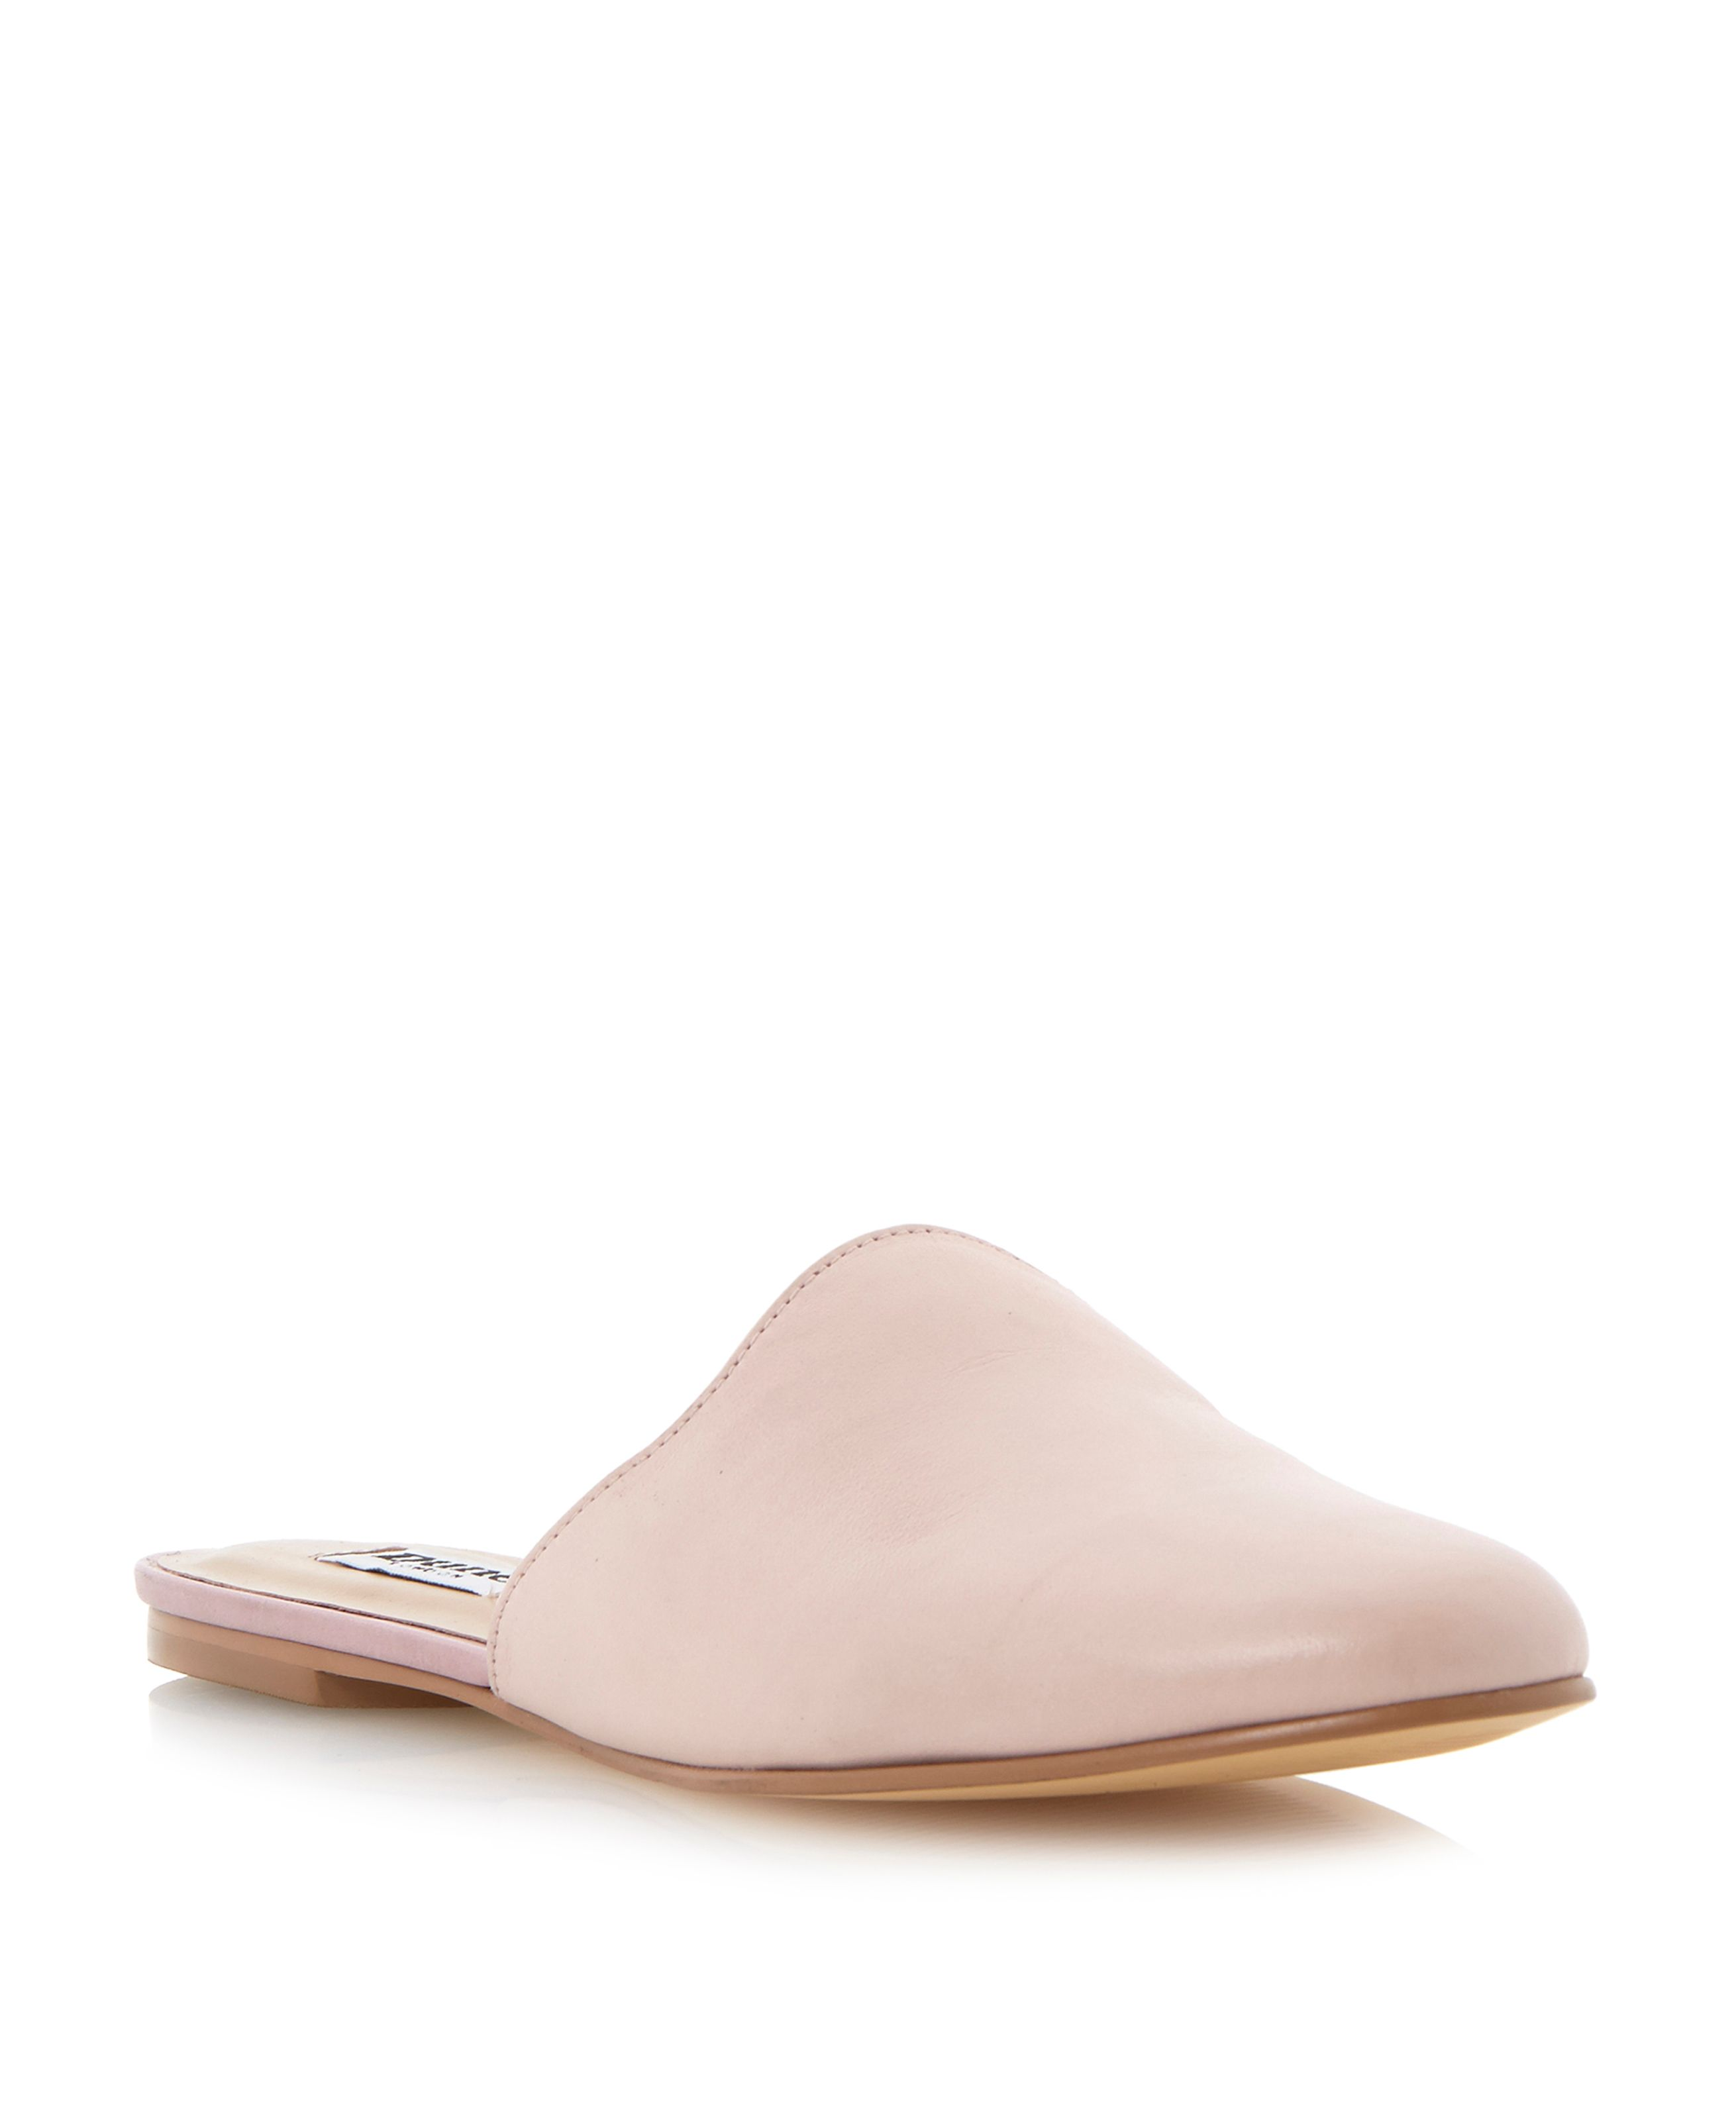 Larrick closed toe flat leather mules